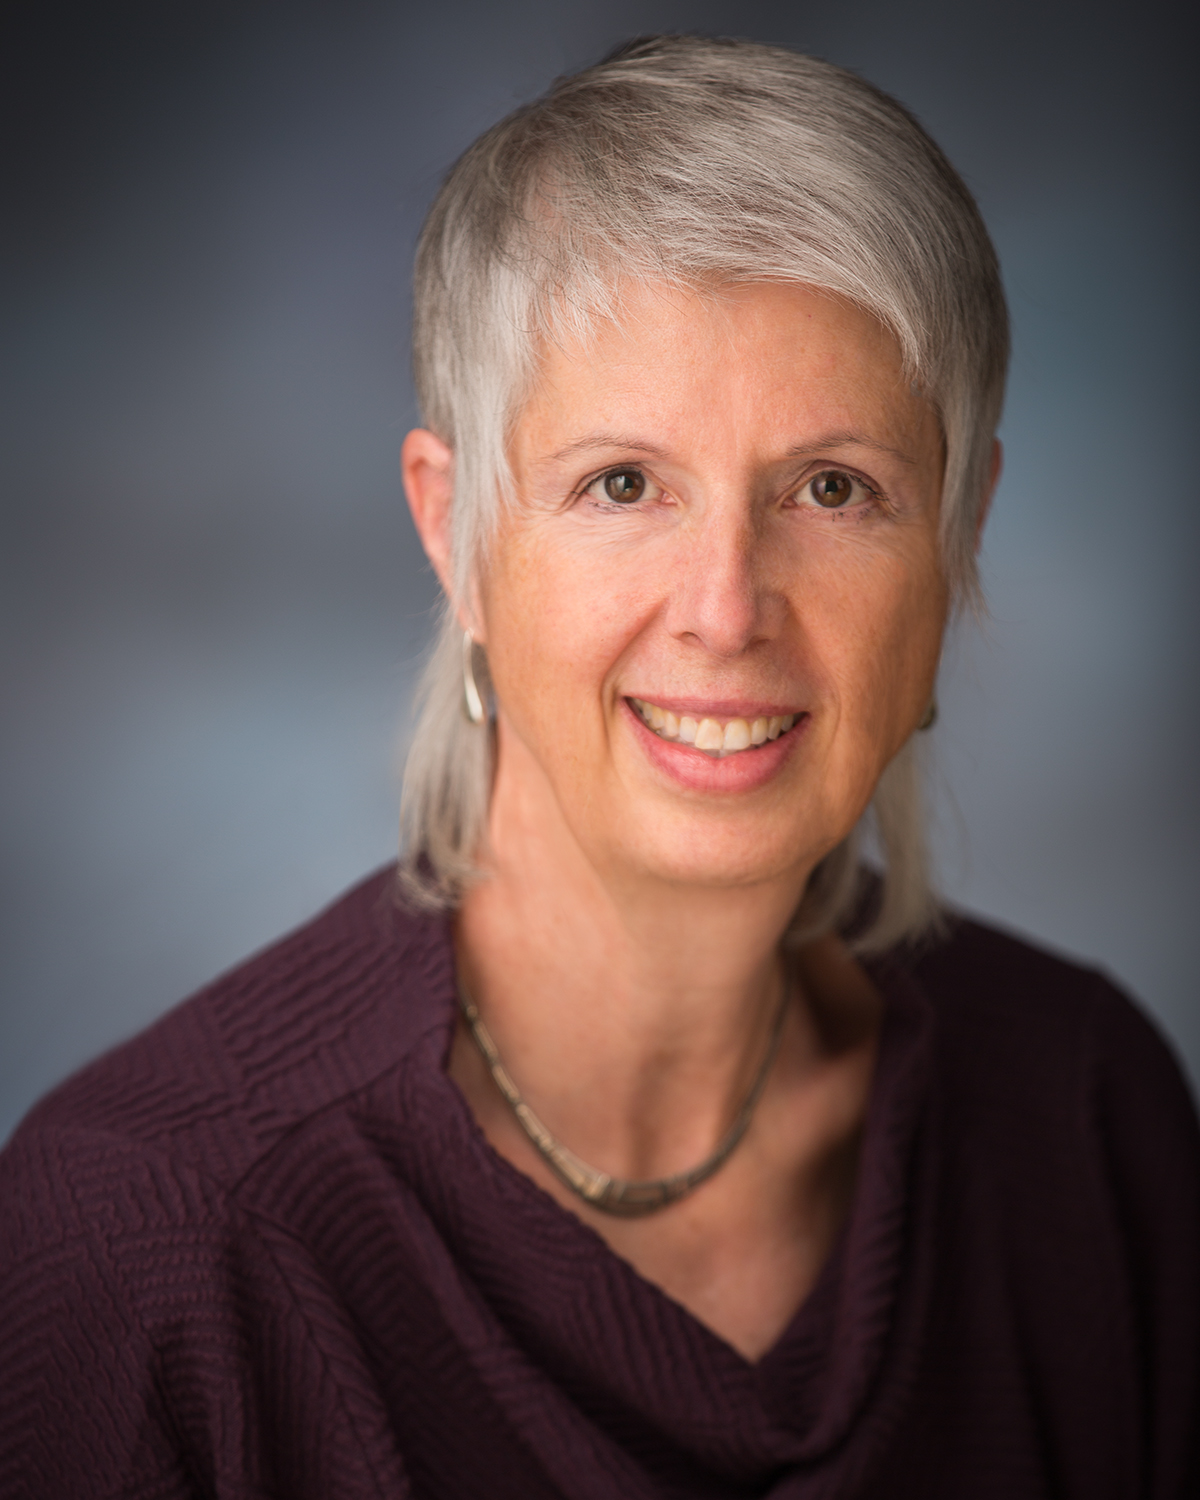 Nora Tallman, CNM, MSN - Nurse-Midwife, Obstetrics and Gynecology, Portland, OR